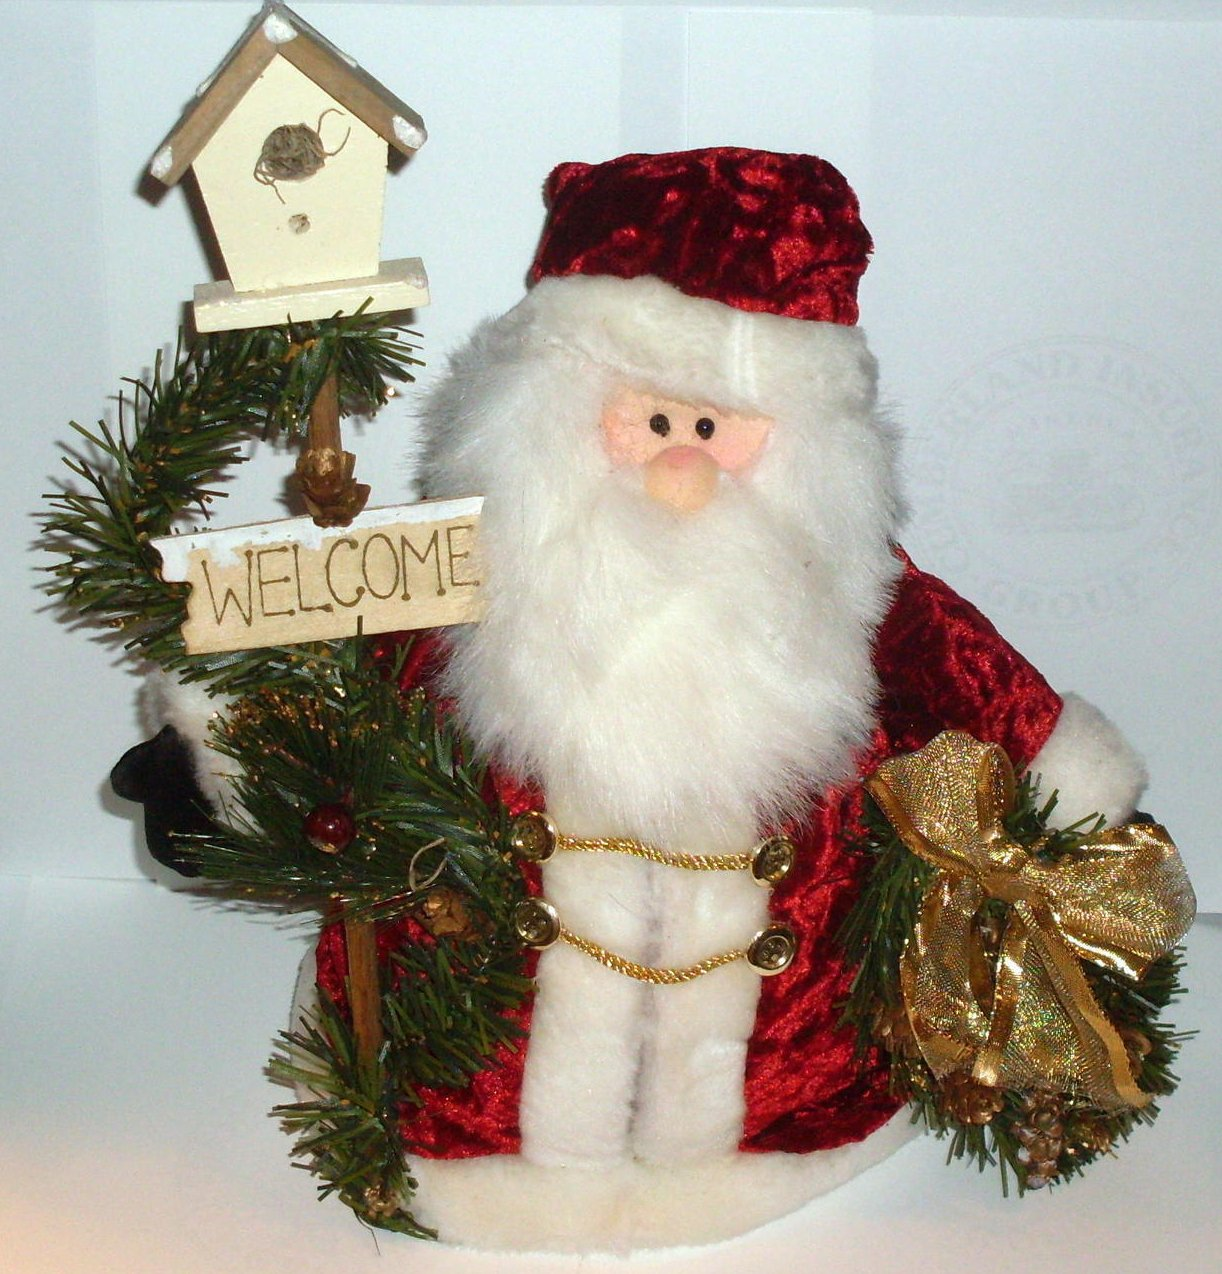 Welcome Santa with Birdhouse and Wreath Holiday Doll Decor